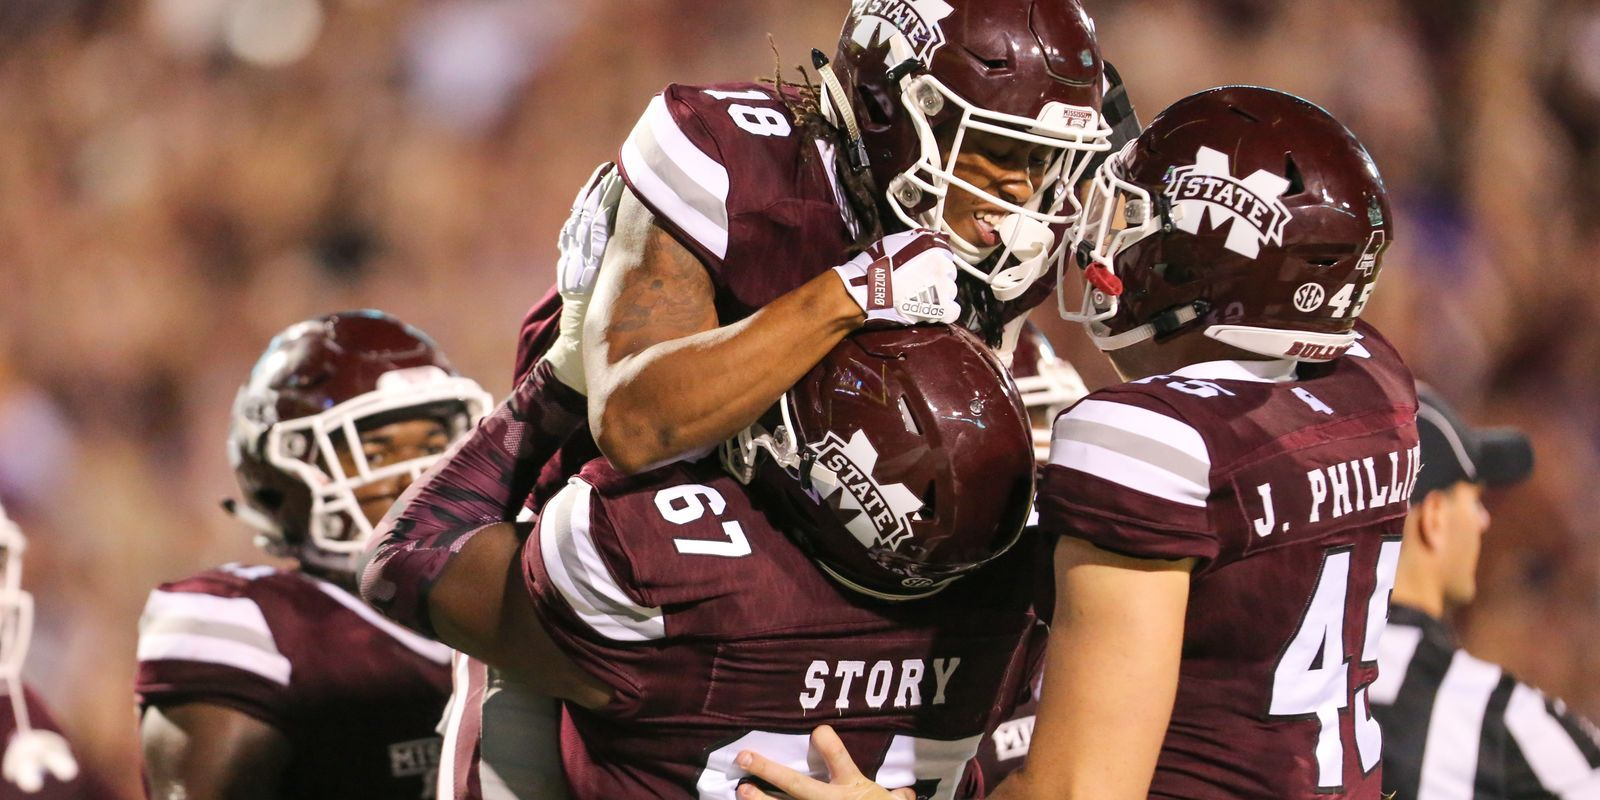 Why Mississippi State football is ranked No. 1 in these ratings